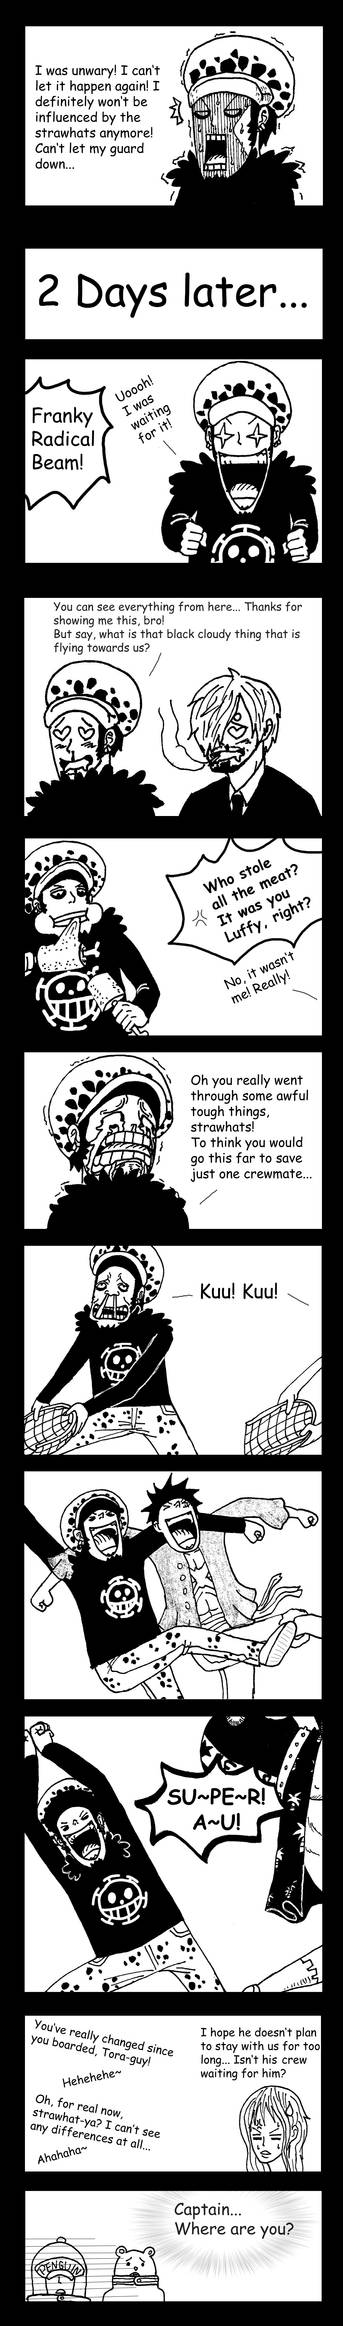 Law - The Impact Of The Strawhats by TolkienOP on DeviantArt